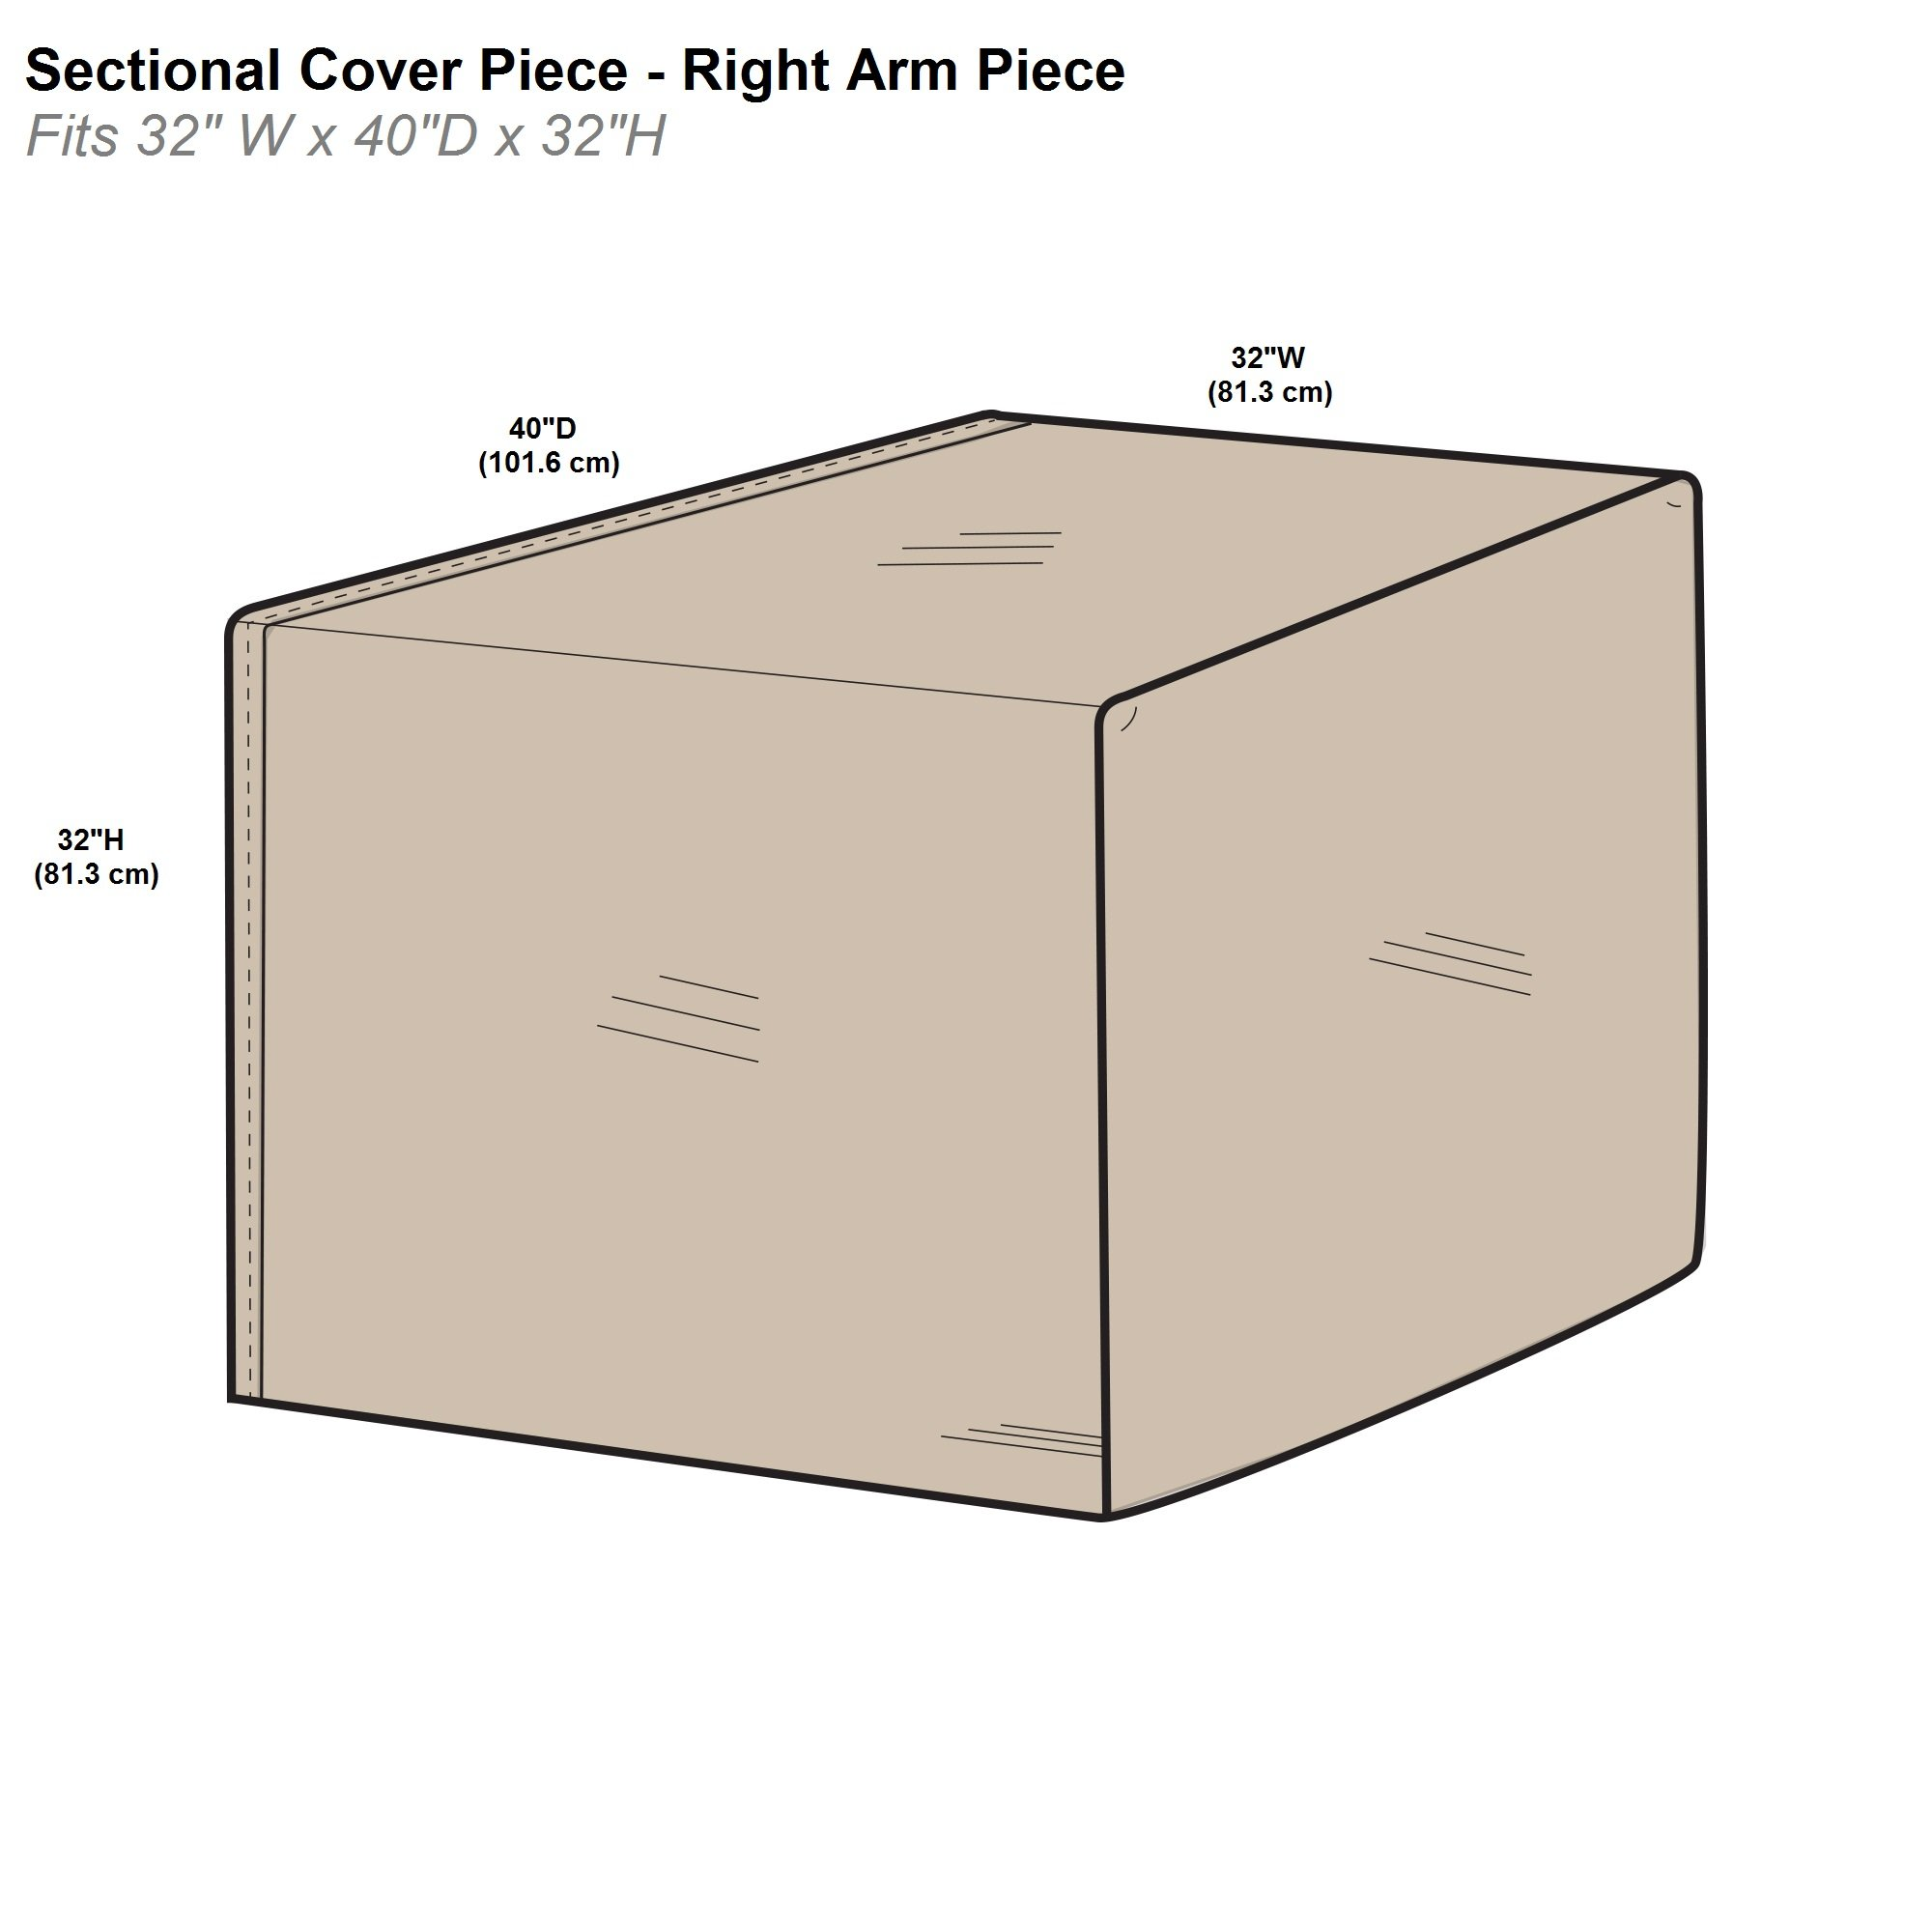 Protective Covers Inc. Modular Sectional Sofa Cover, Right Arm Piece, 32''W x 40''D x 32''H, Tan